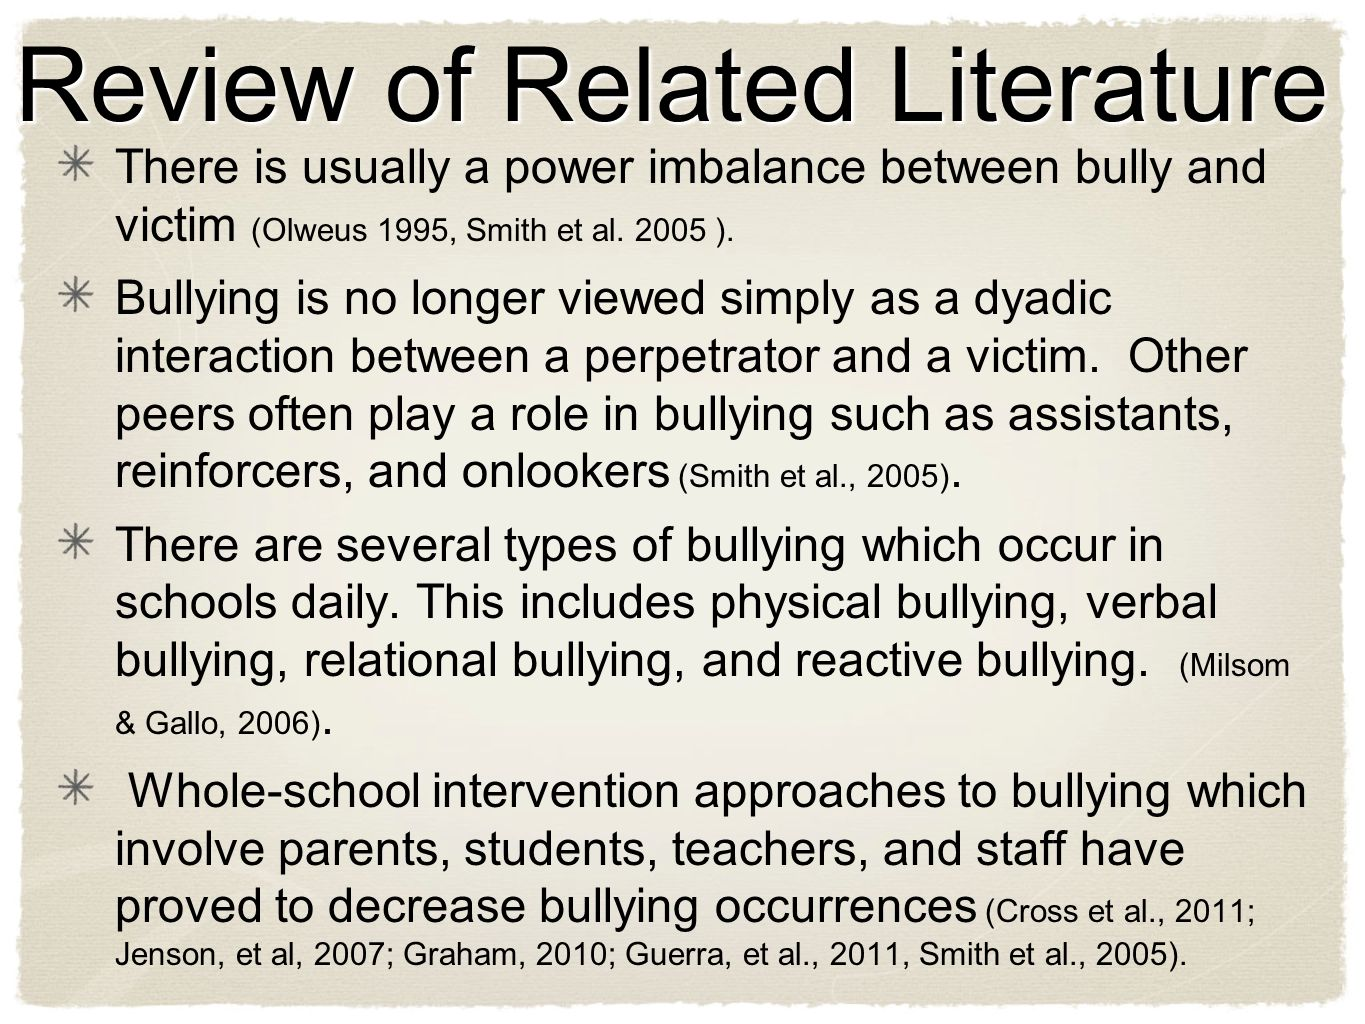 There is usually a power imbalance between bully and victim (Olweus 1995, Smith et al.